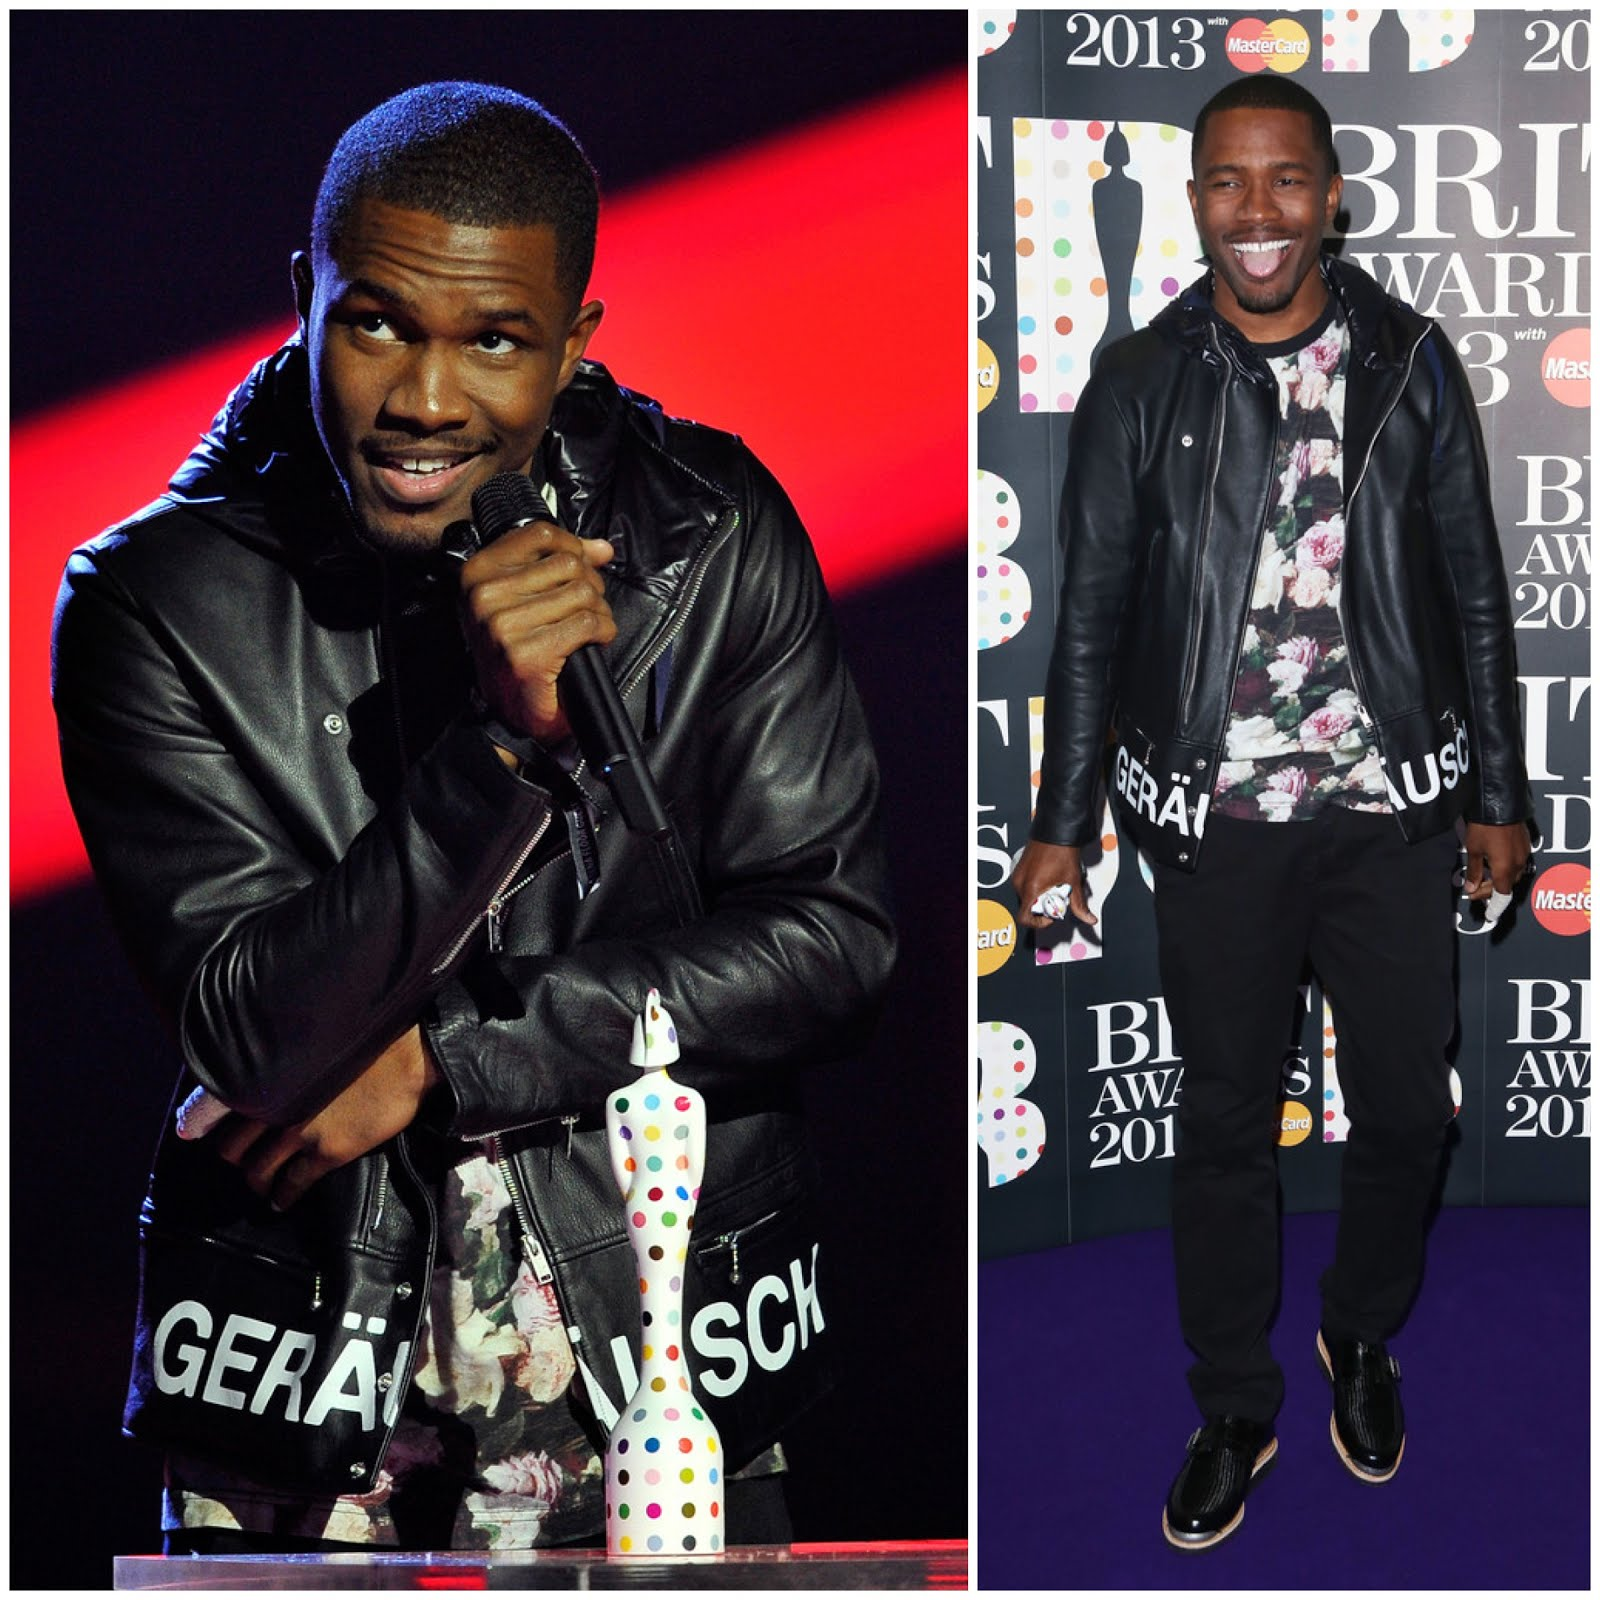 00O00 Menswear Blog Frank Ocean in UnderCover by Jun Takahashi and Supreme rose print tshirt - Brit Awards 2013, #Brits2013